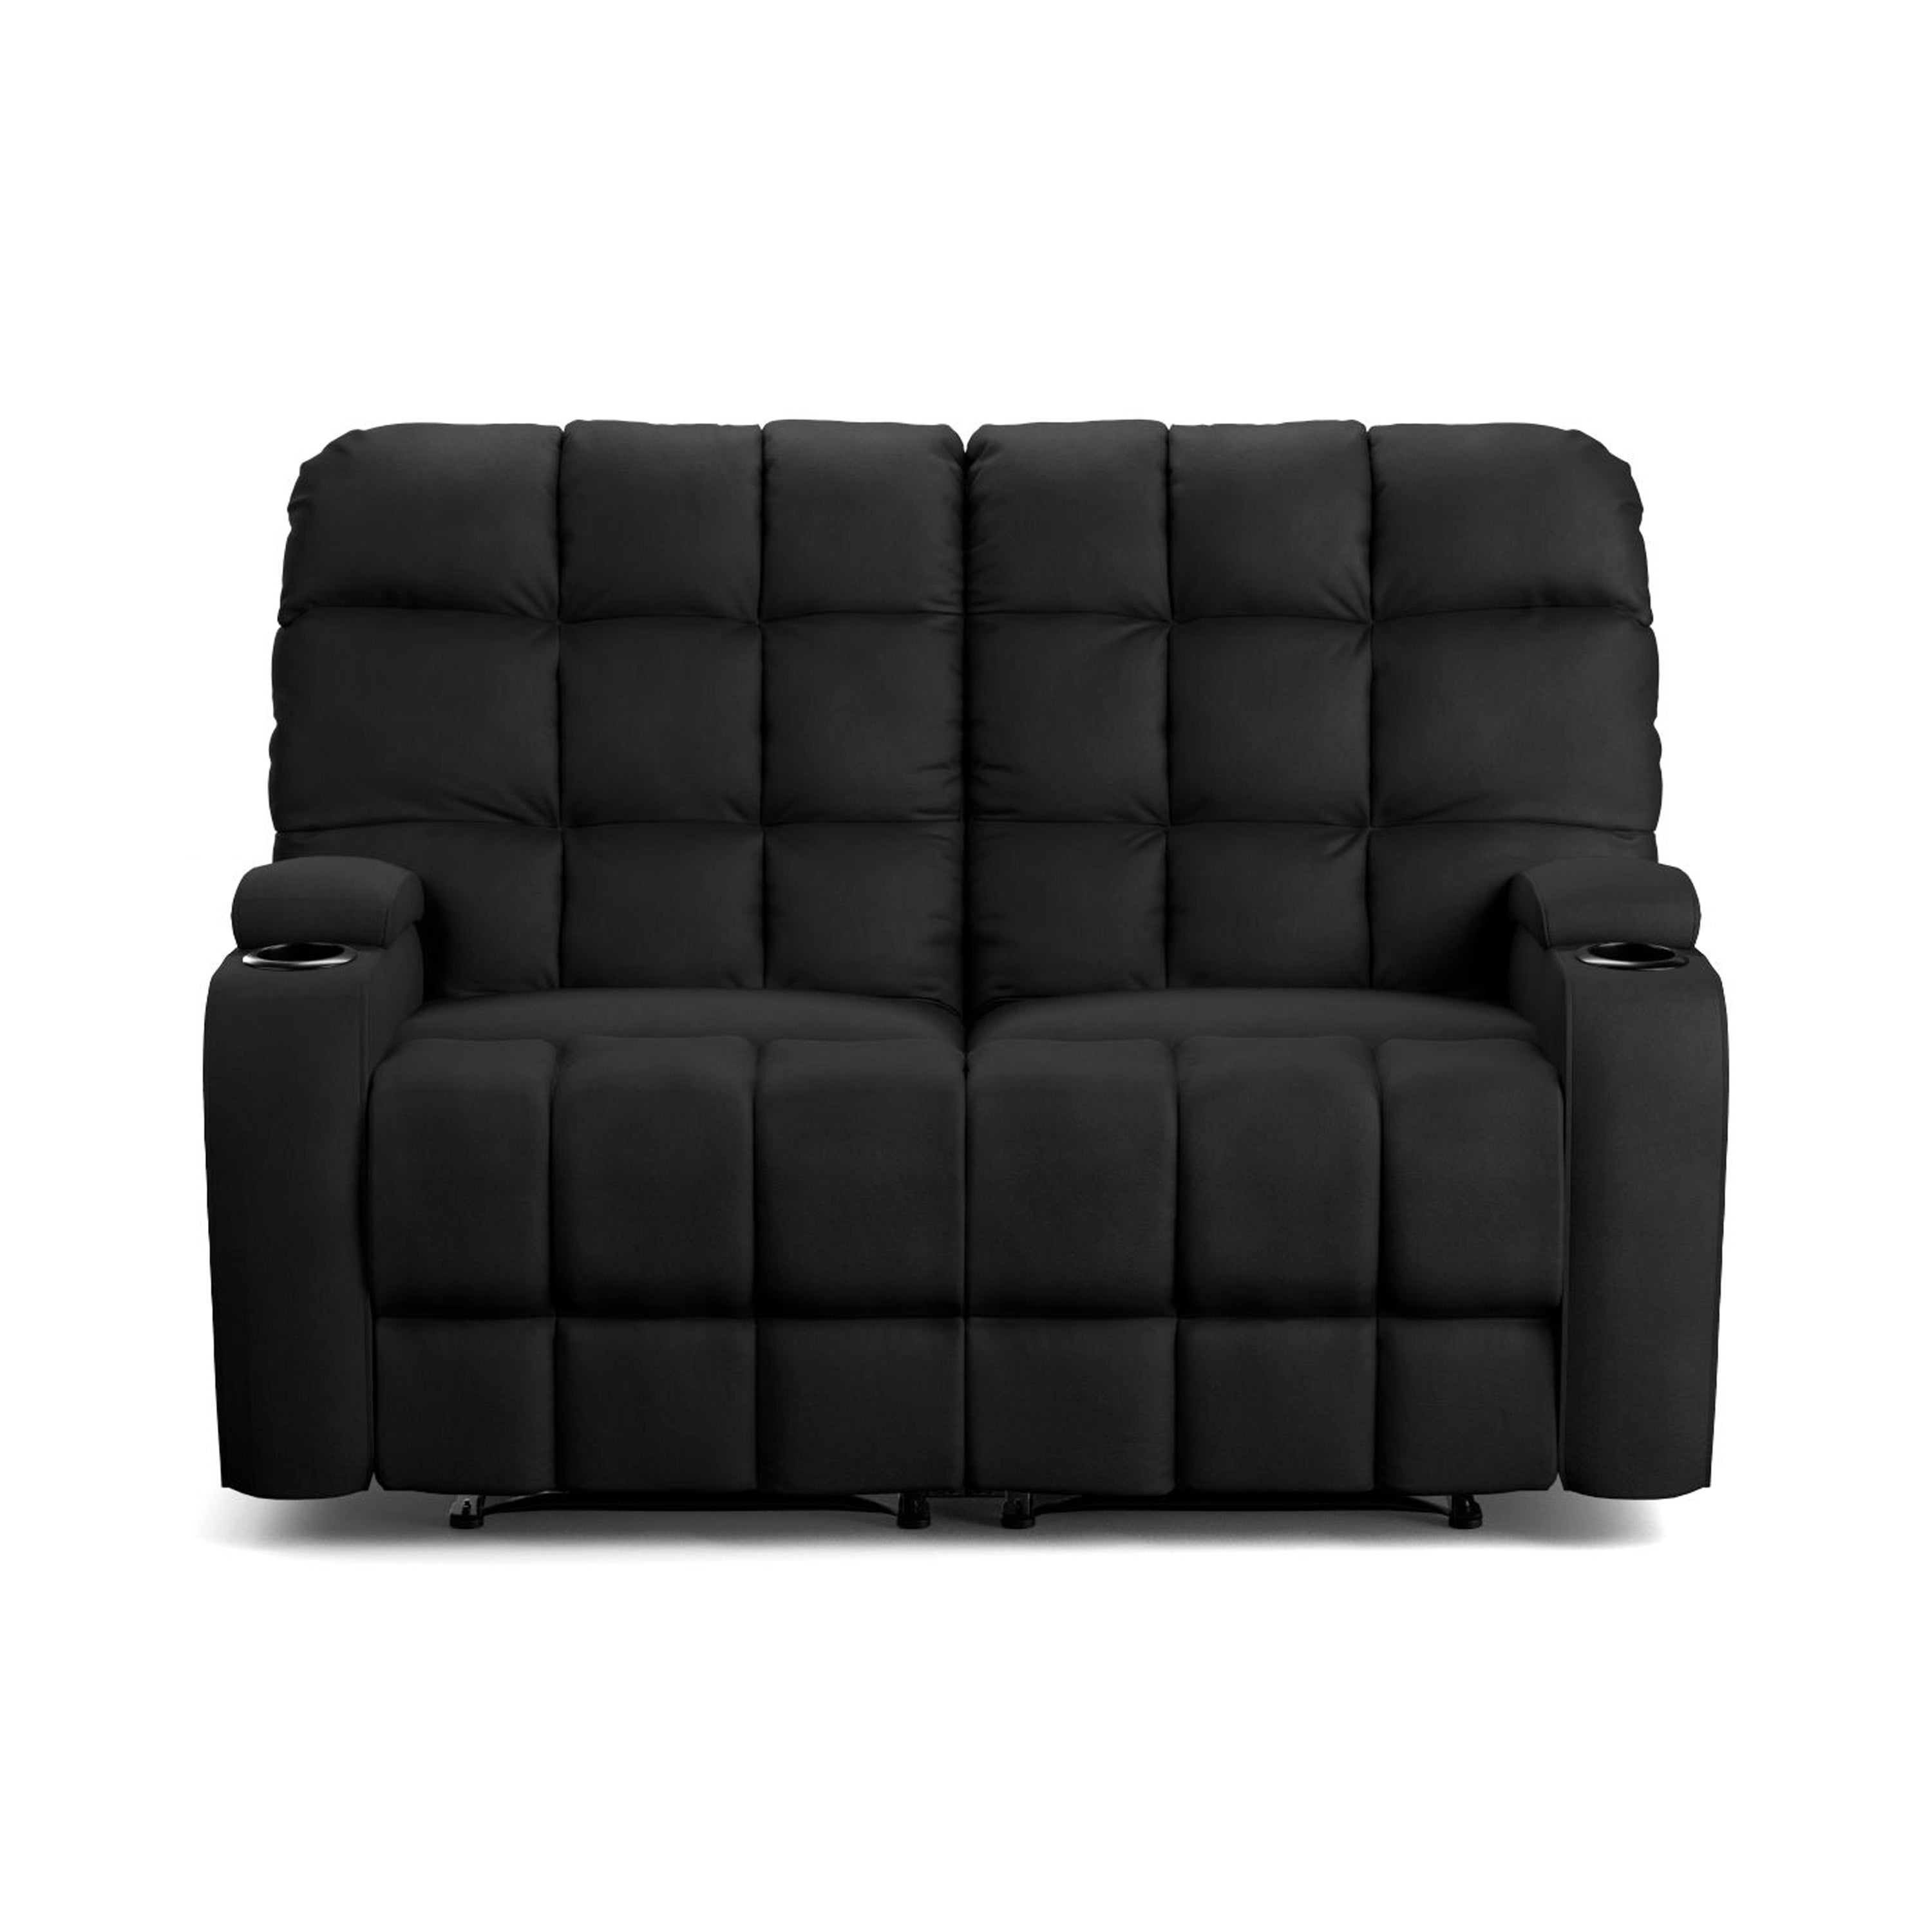 Double Recliner Chair Dual Microfiber 2 Seat Reclining